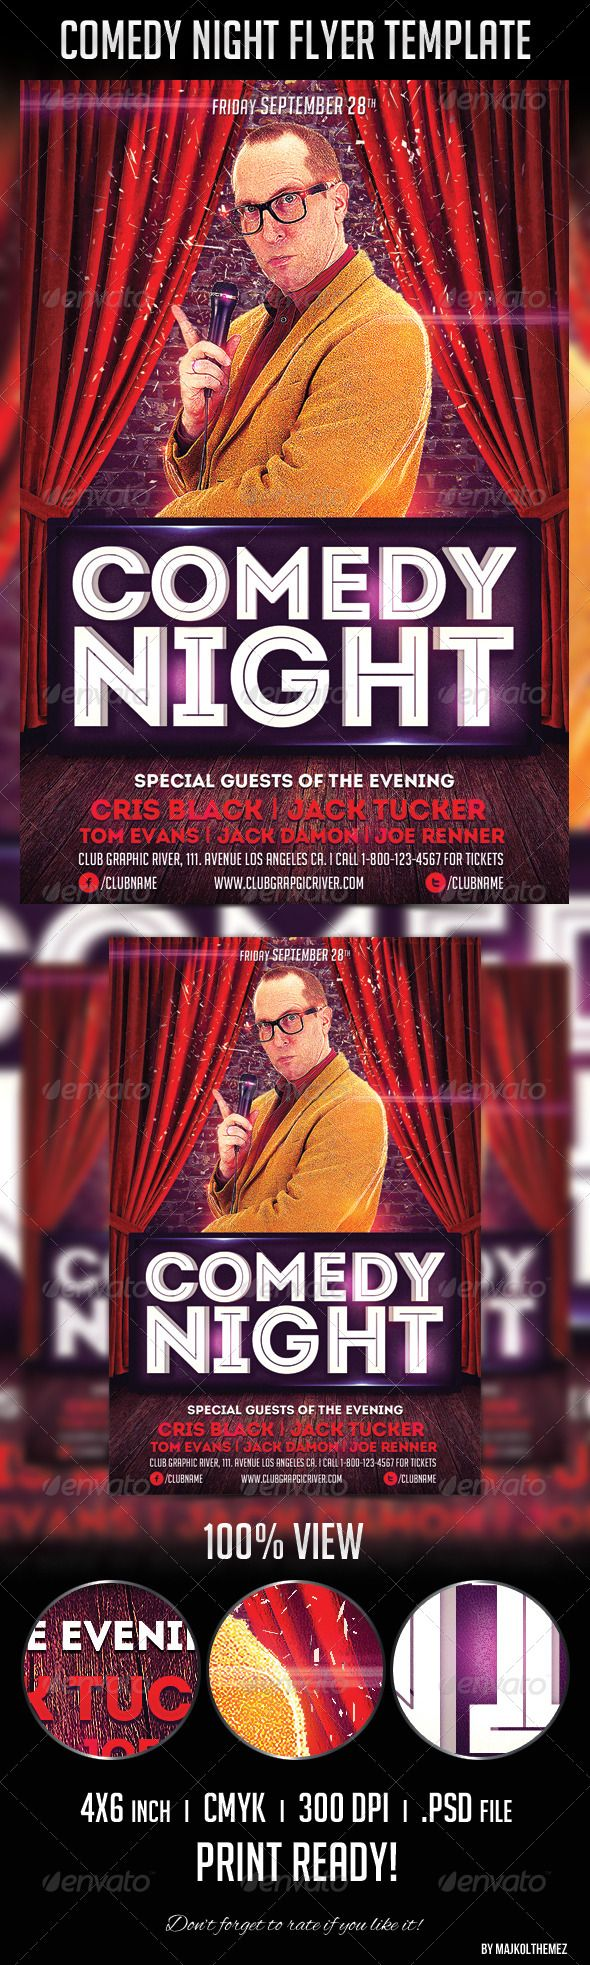 Comedy Night Flyer Template – Comedy Show Flyer Template